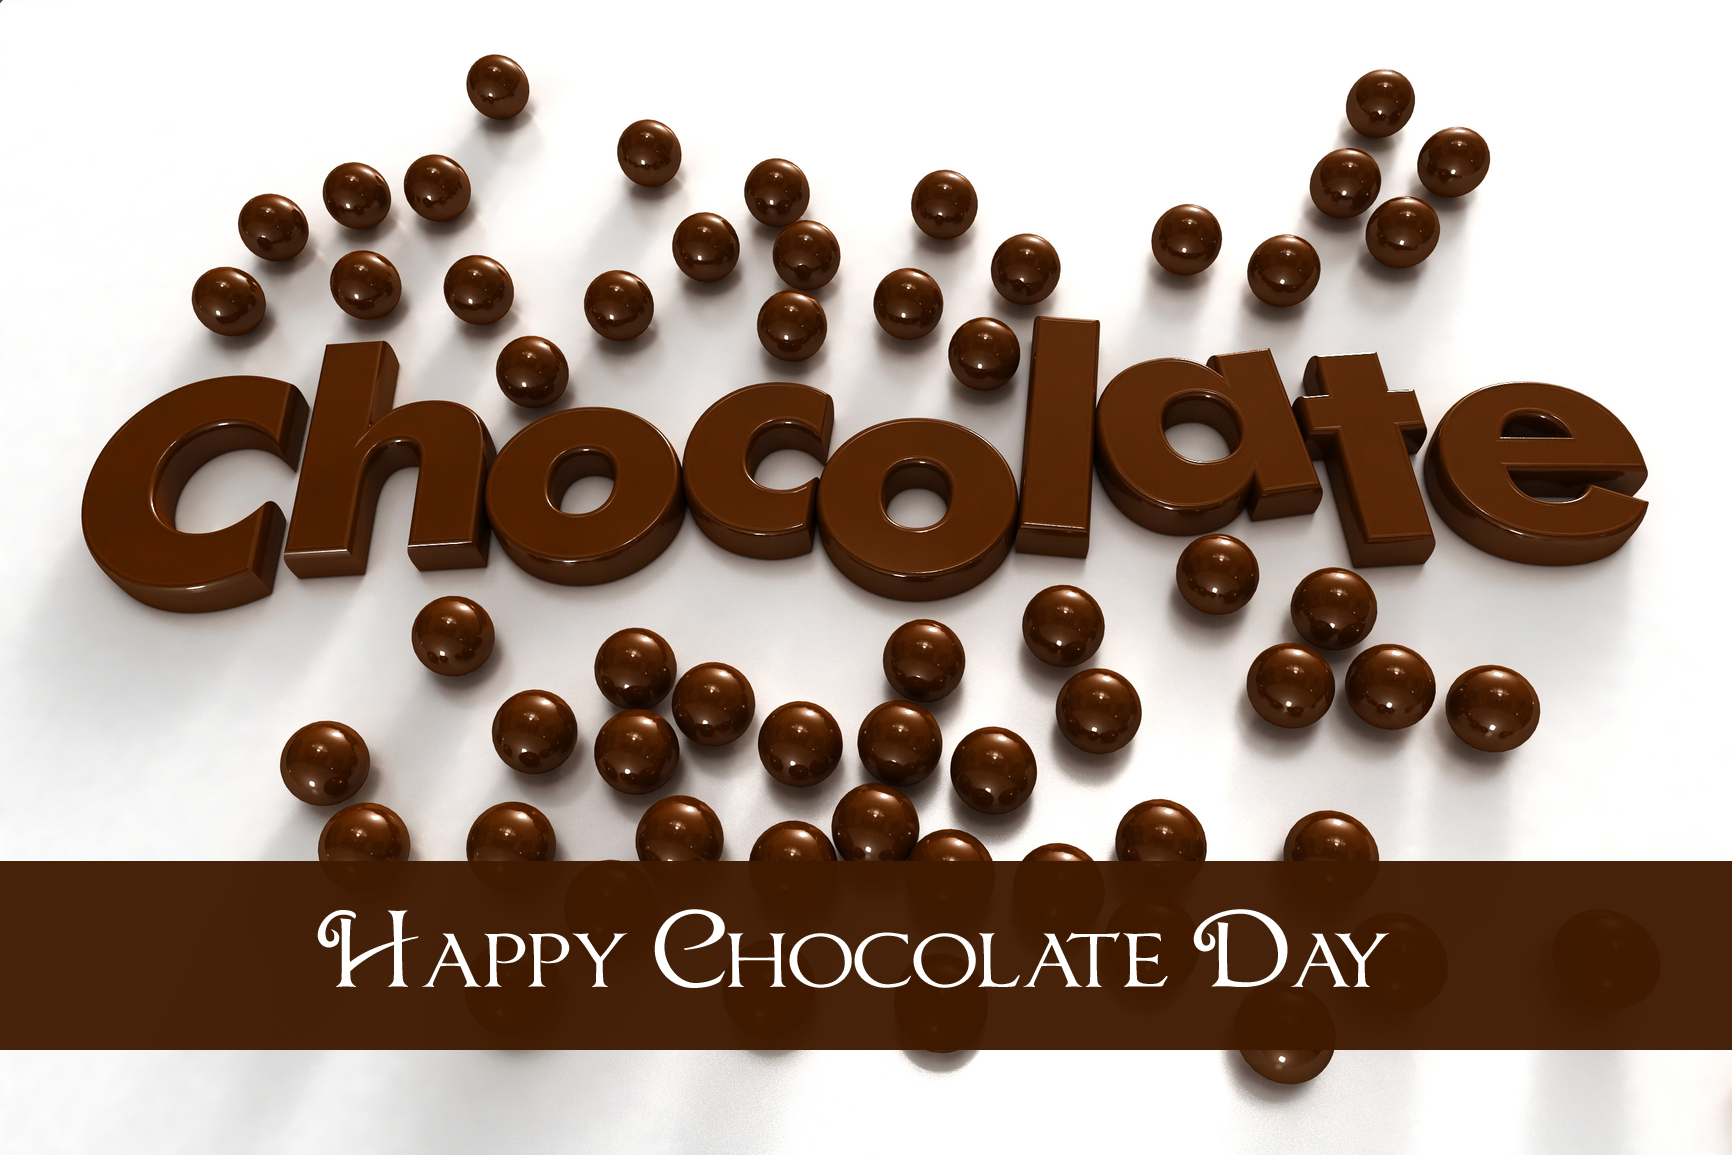 Happy Chocolate Day 2017 HD Image Free Download